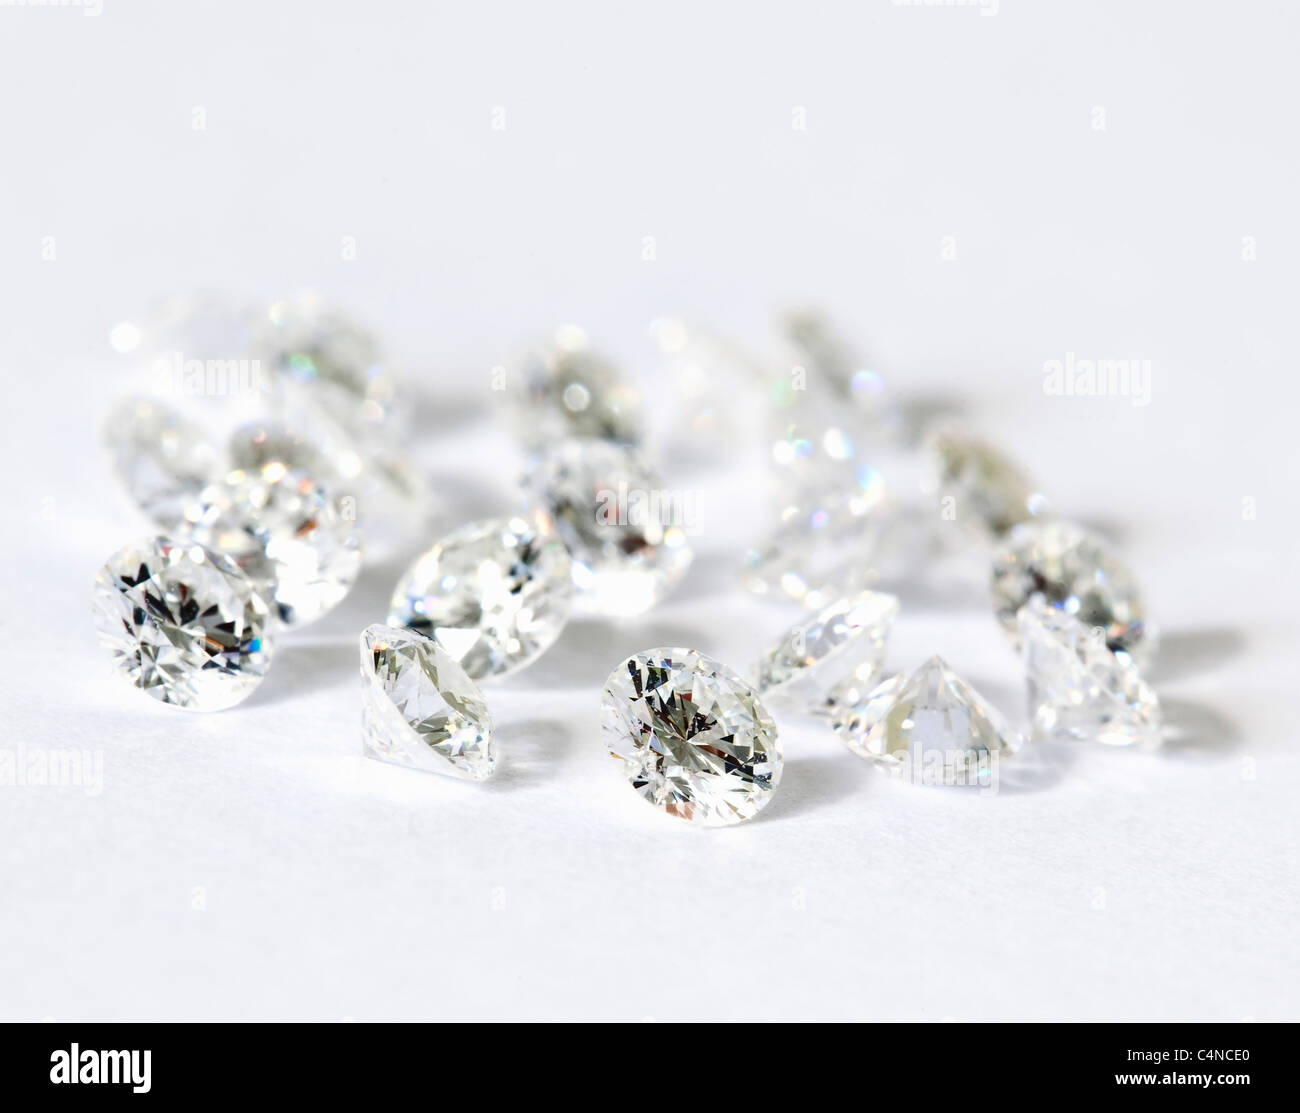 stock fashion alamy blood photo treasure images stones jewels precious war diamond wealth rich image conflict photos